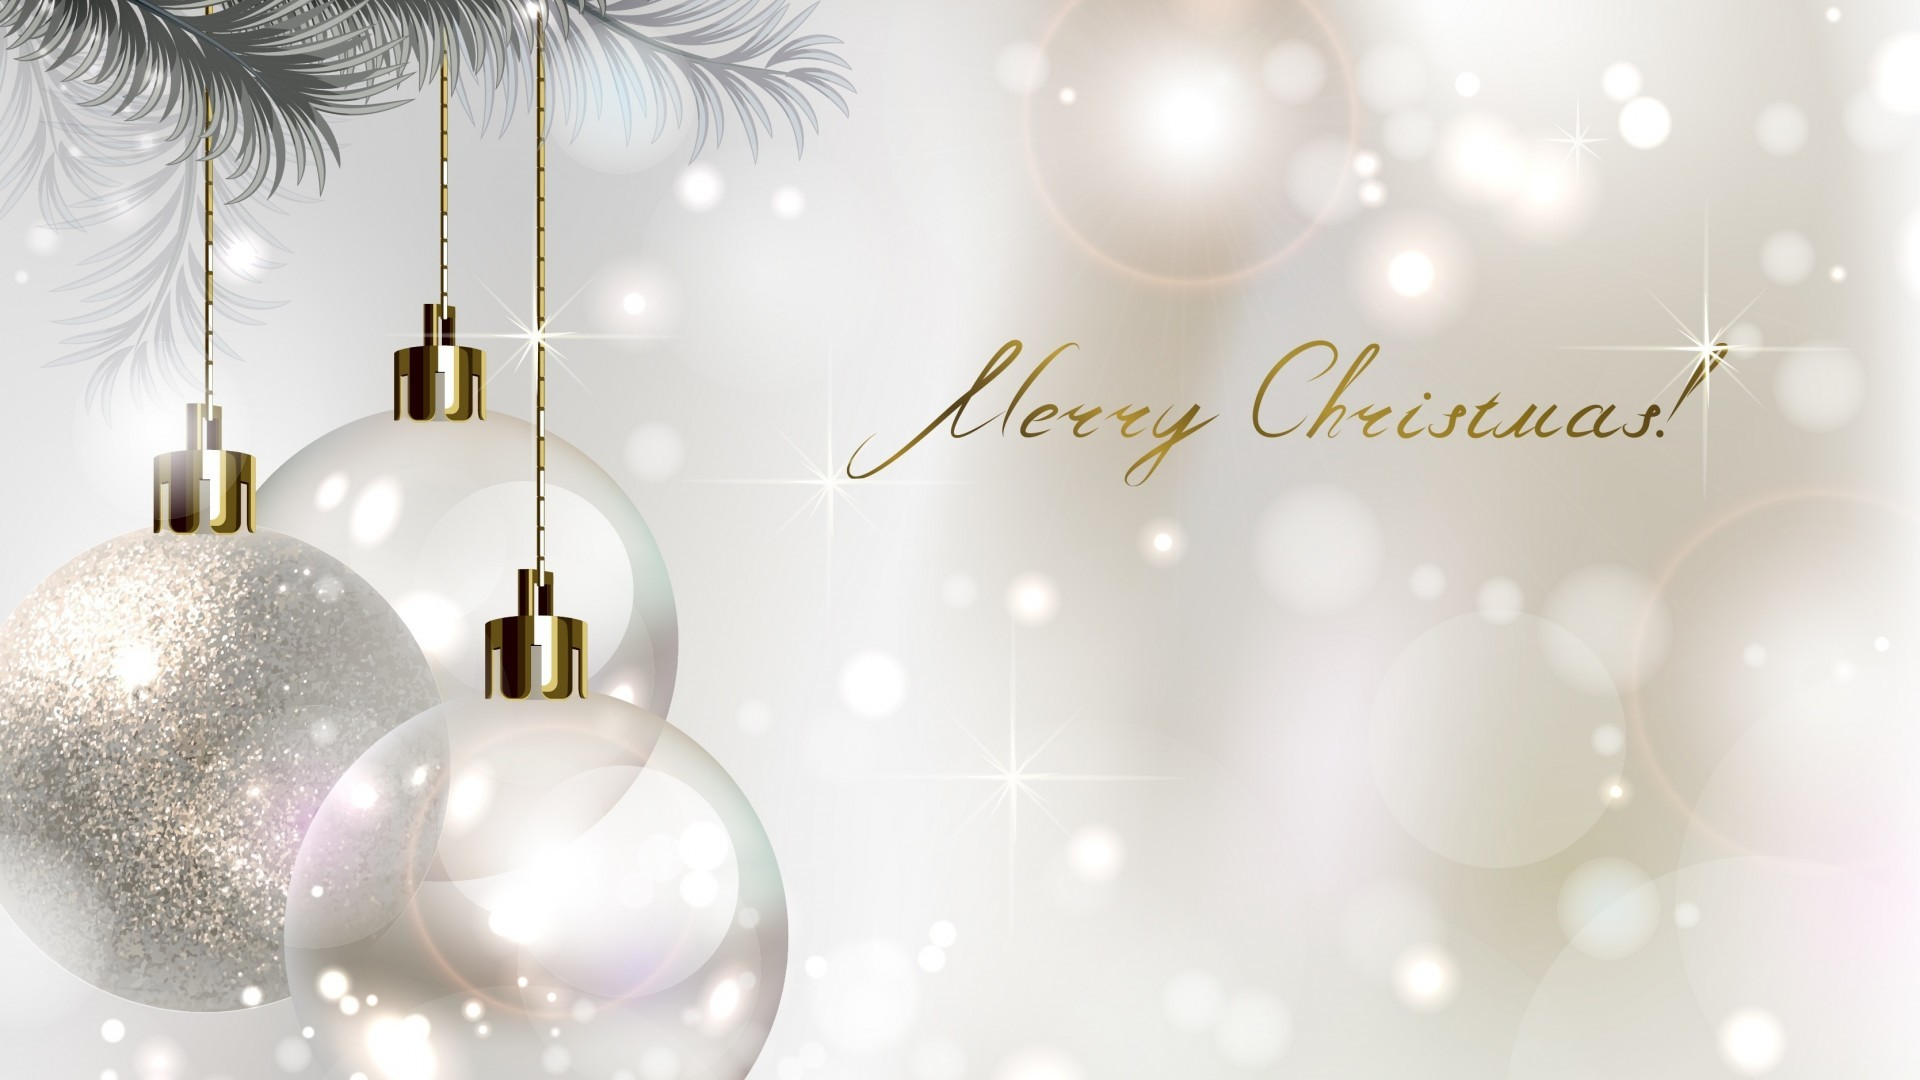 1920x1080 White And Gold Christmas Wallpaper (07)